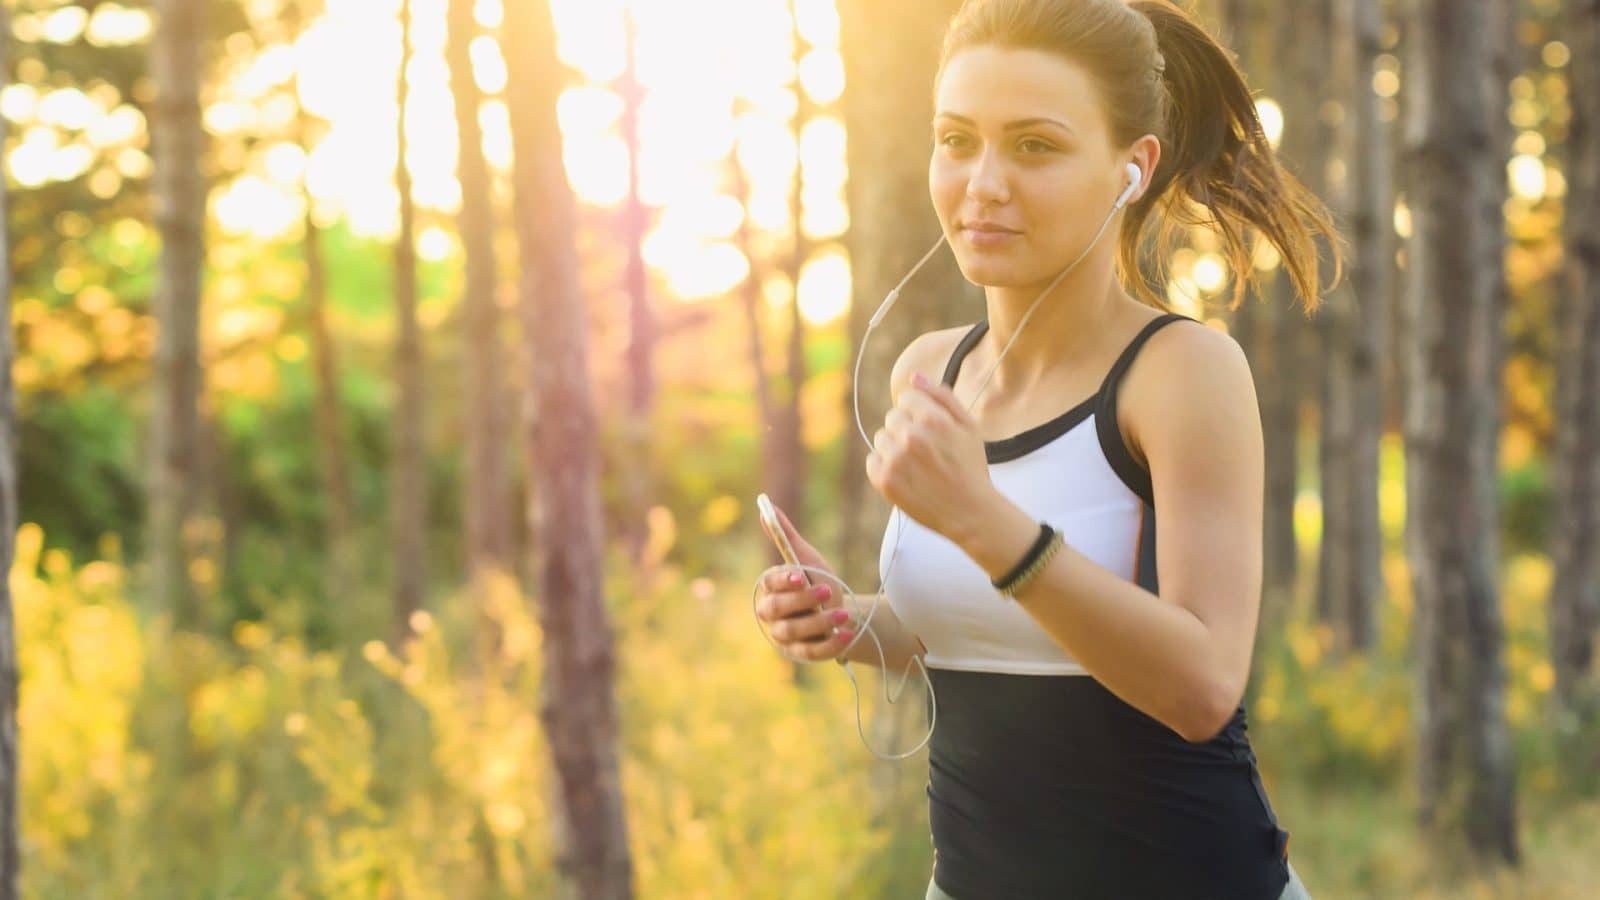 exercise while traveling